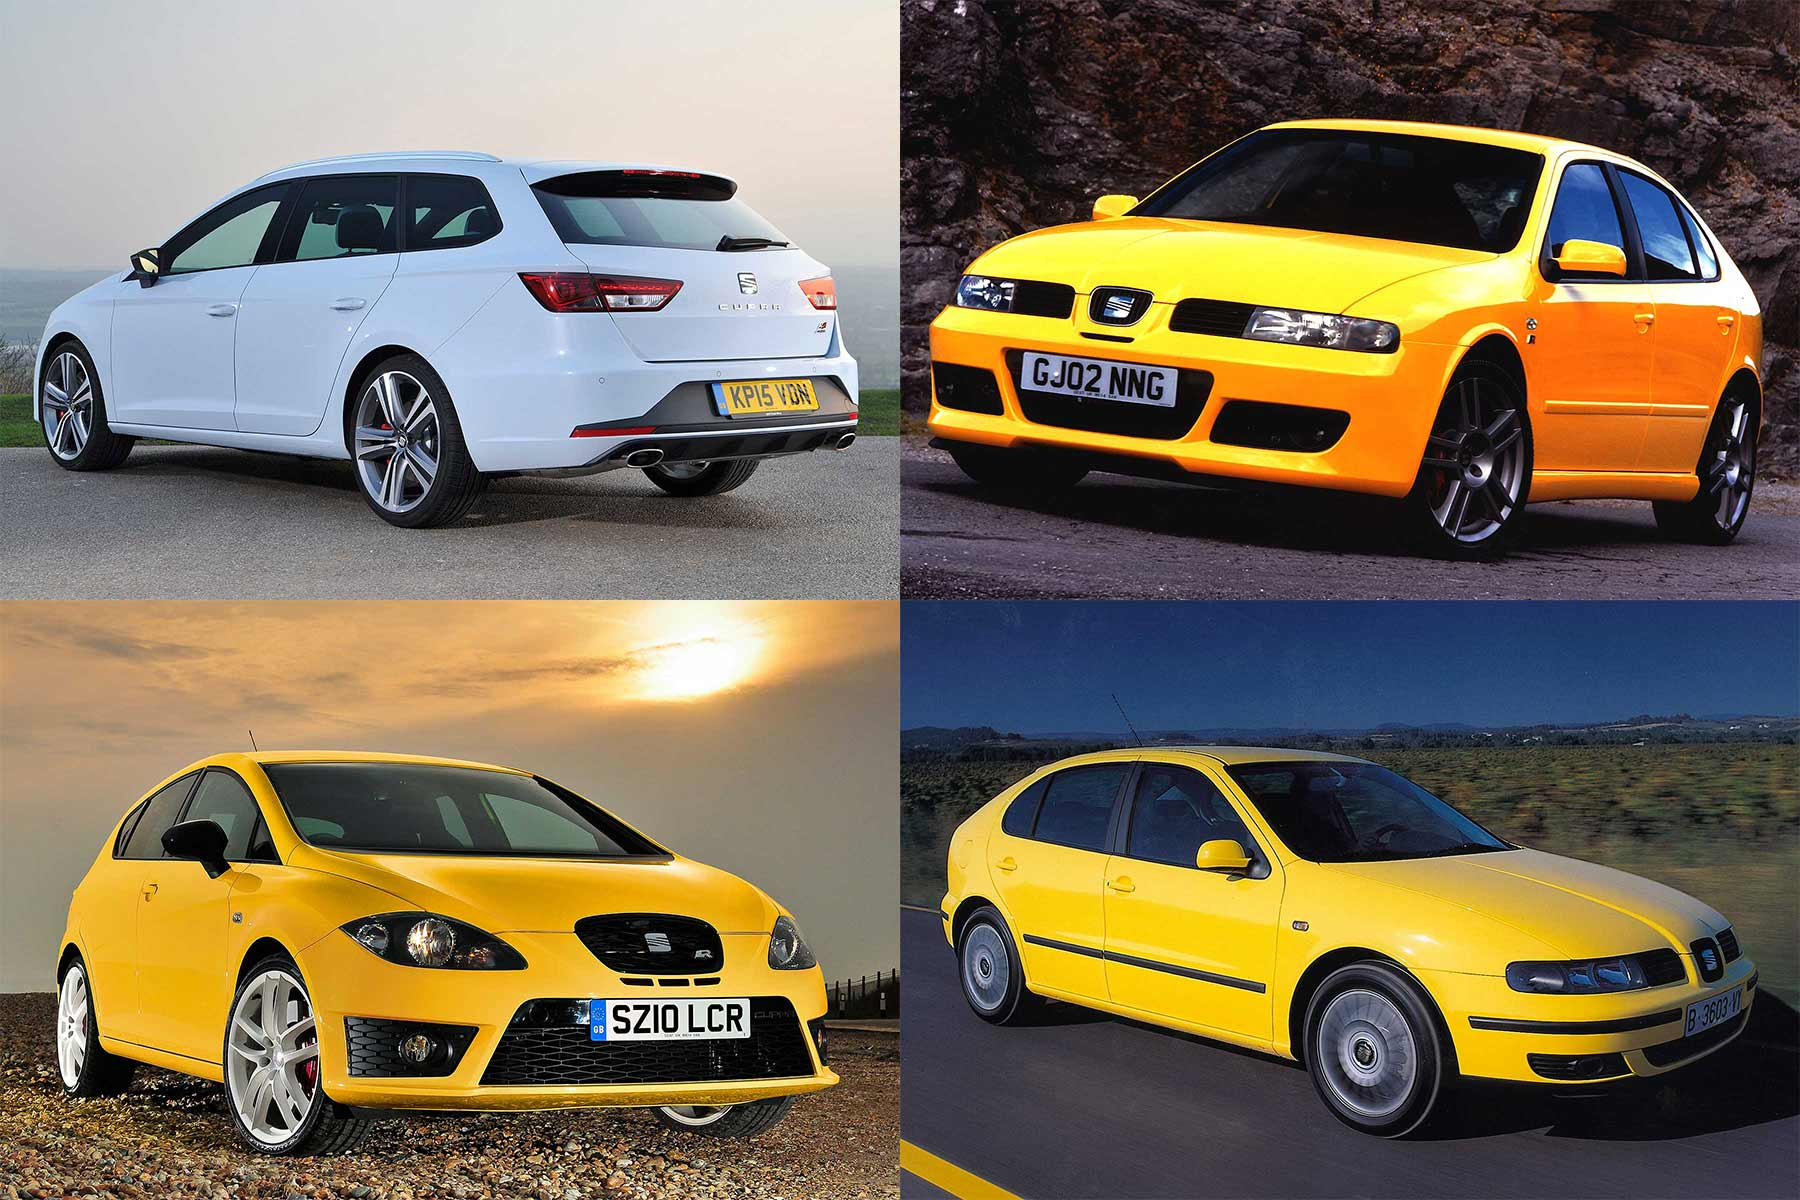 SEAT Leon Cupra yellow